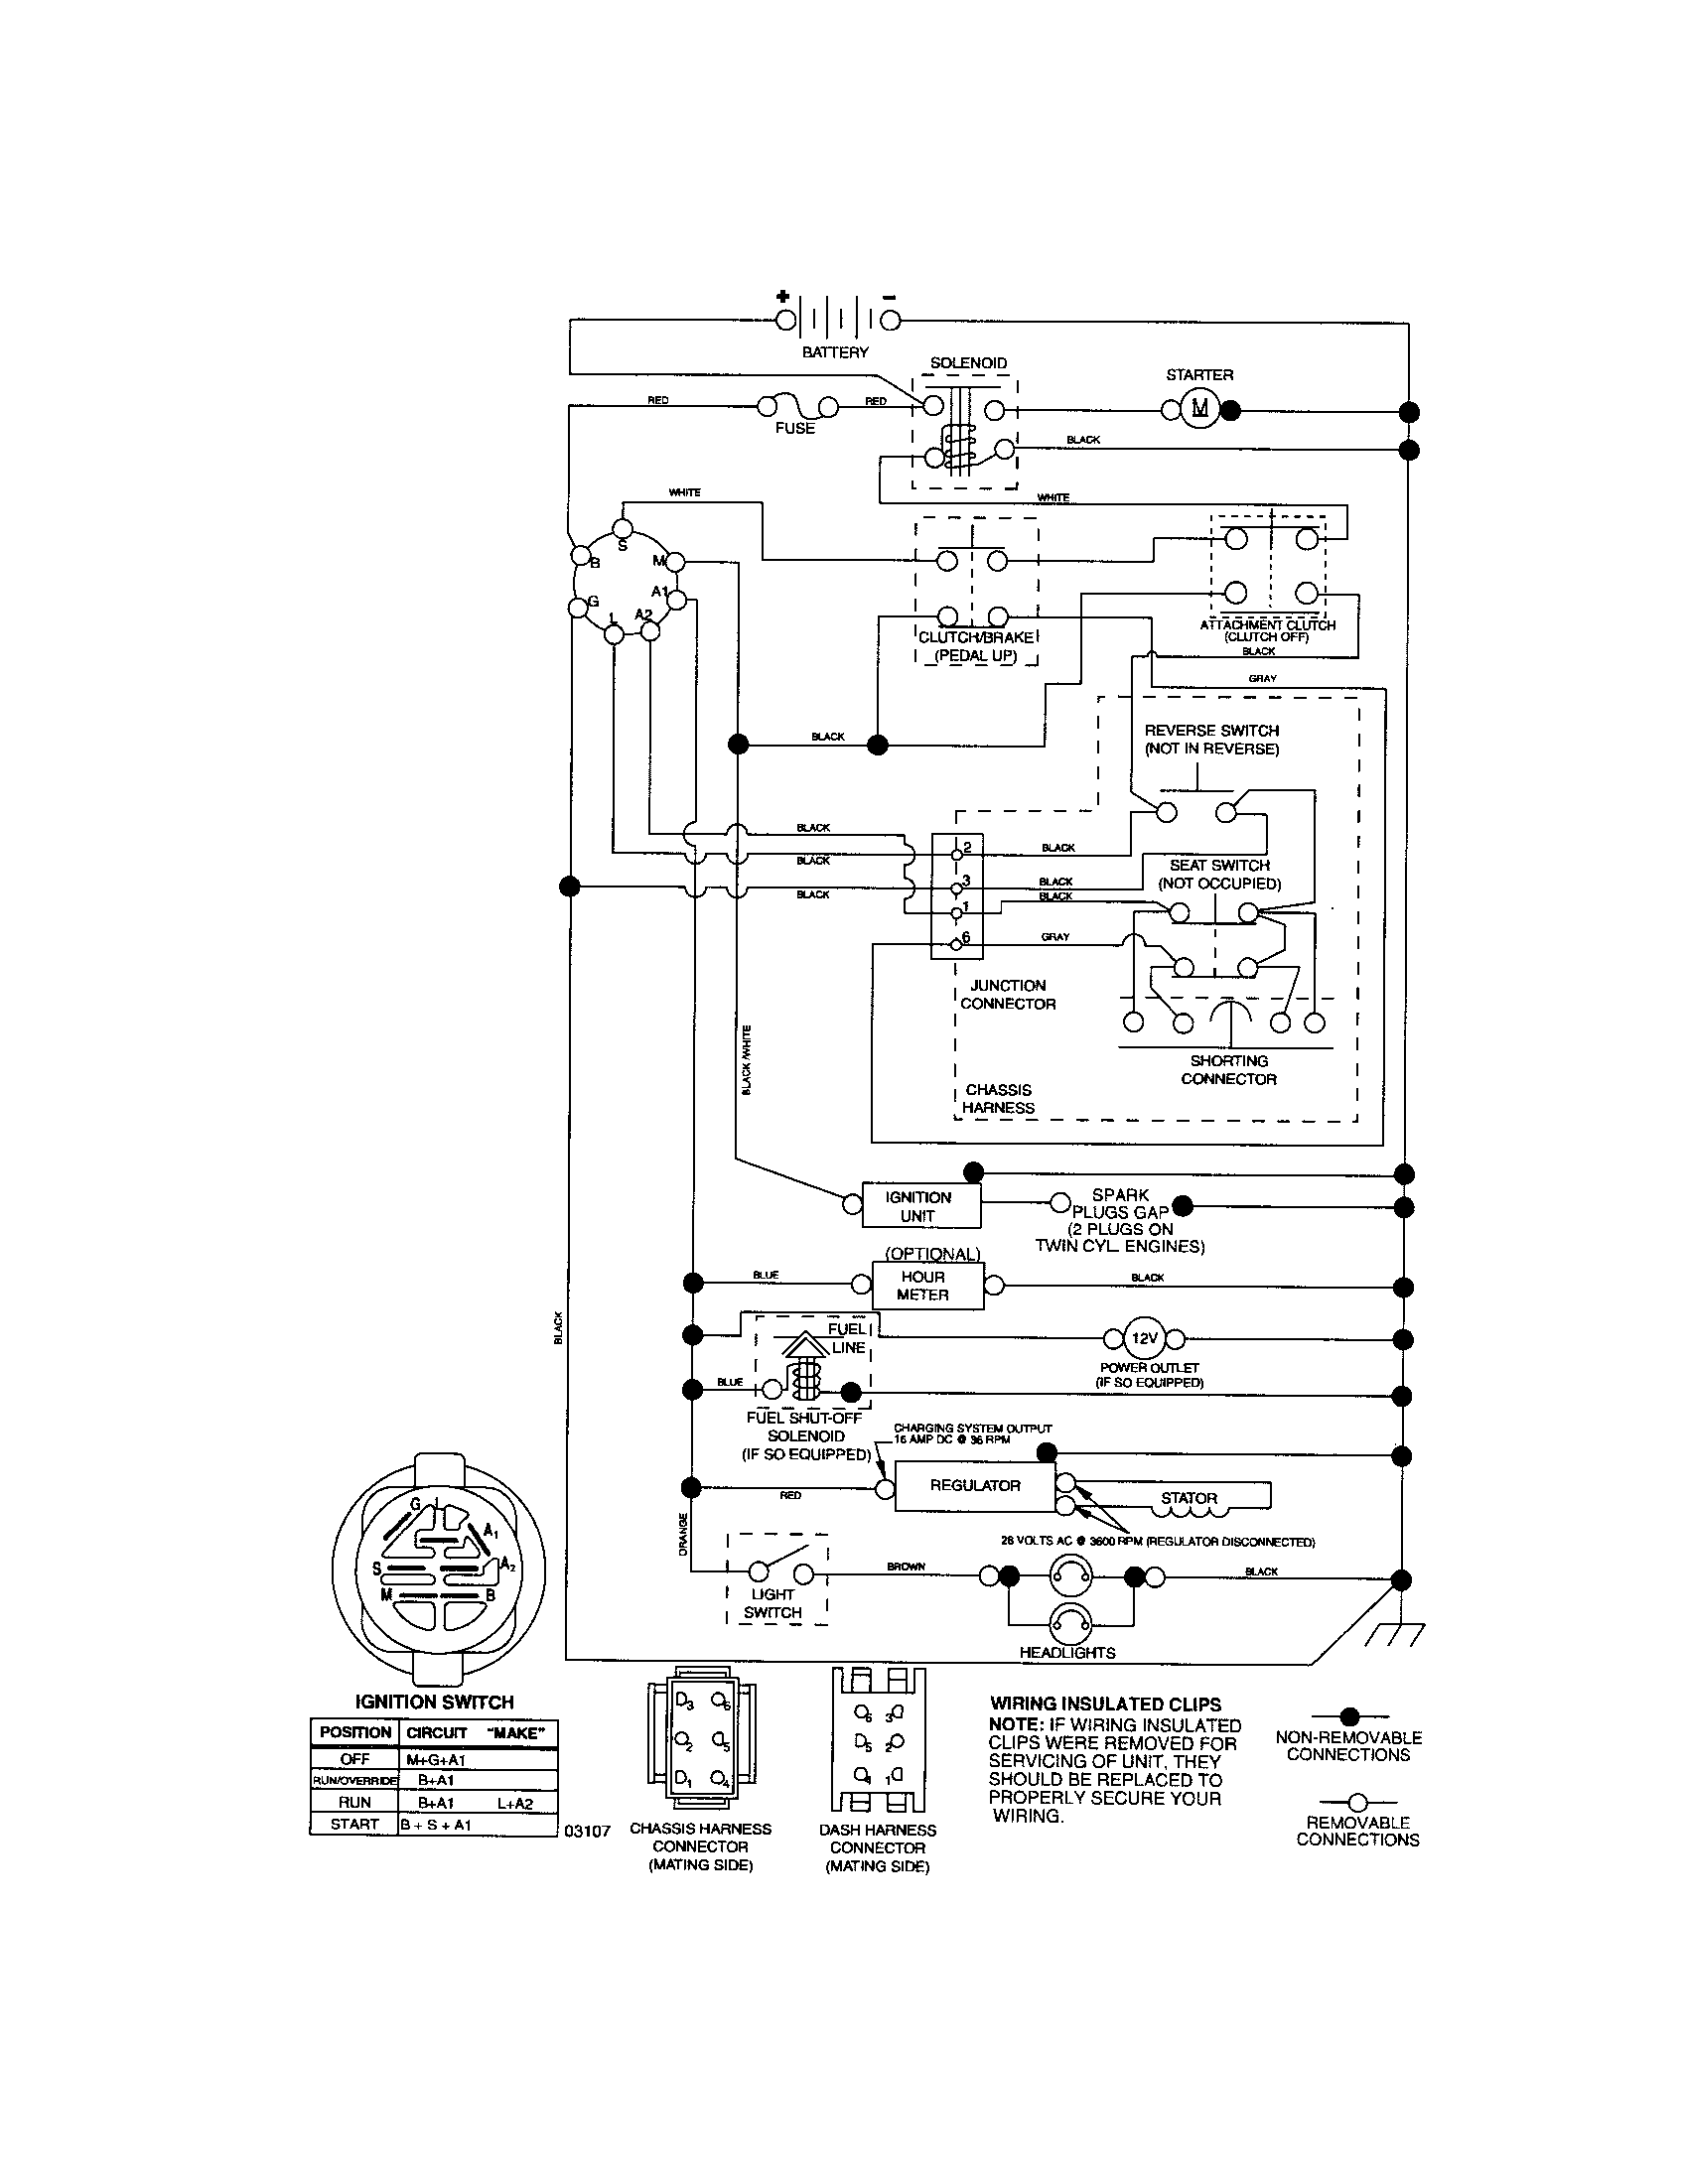 hight resolution of mtd wiring diagram manual trusted wiring diagram rh 3 16 5 gartenmoebel rupp de mtd riding mower wiring diagram schematic mtd riding lawn mower wiring